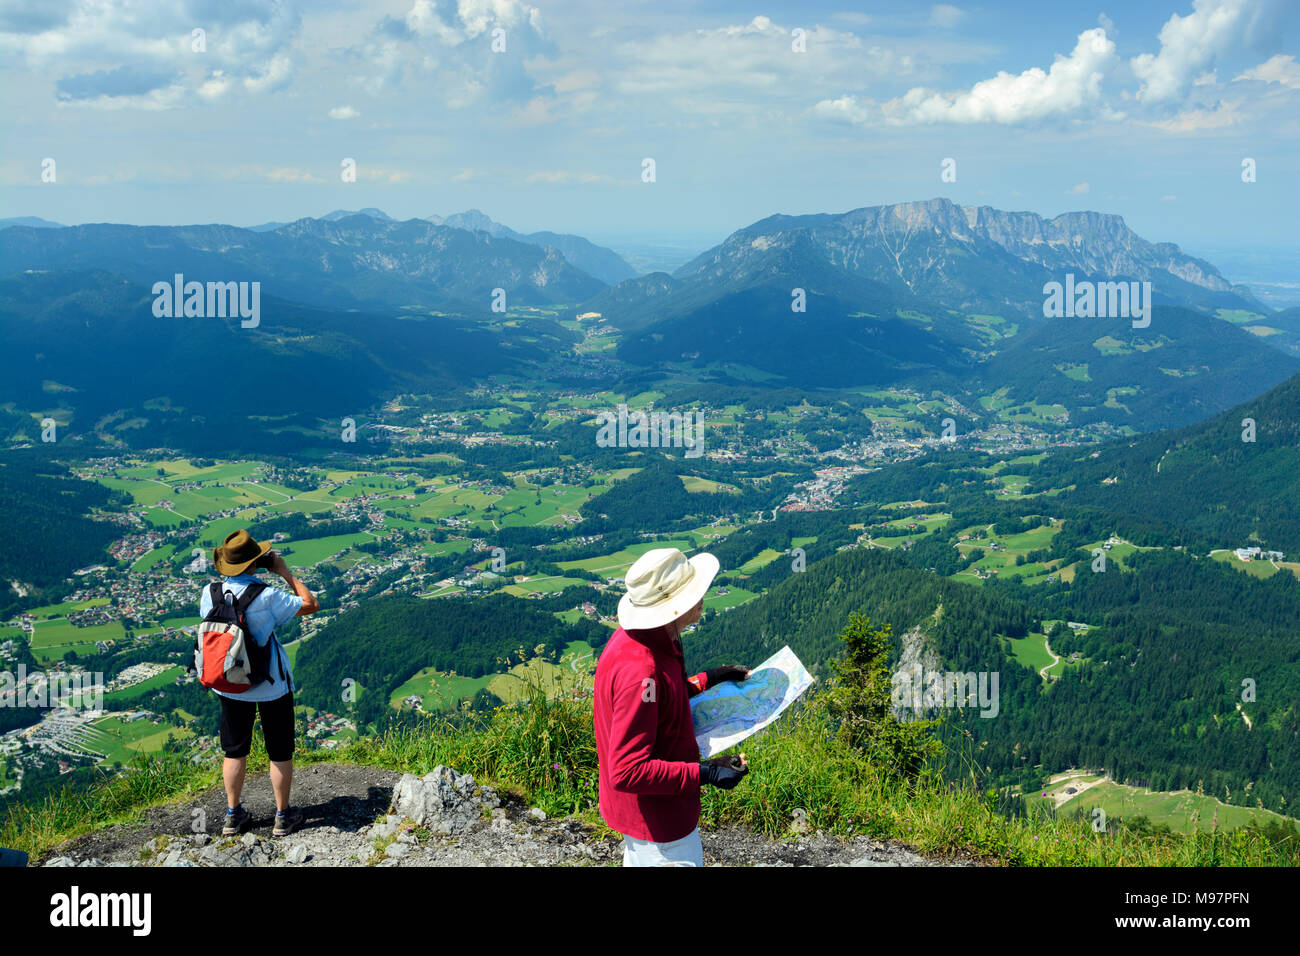 Mountain landscape, travelers with map - Stock Image